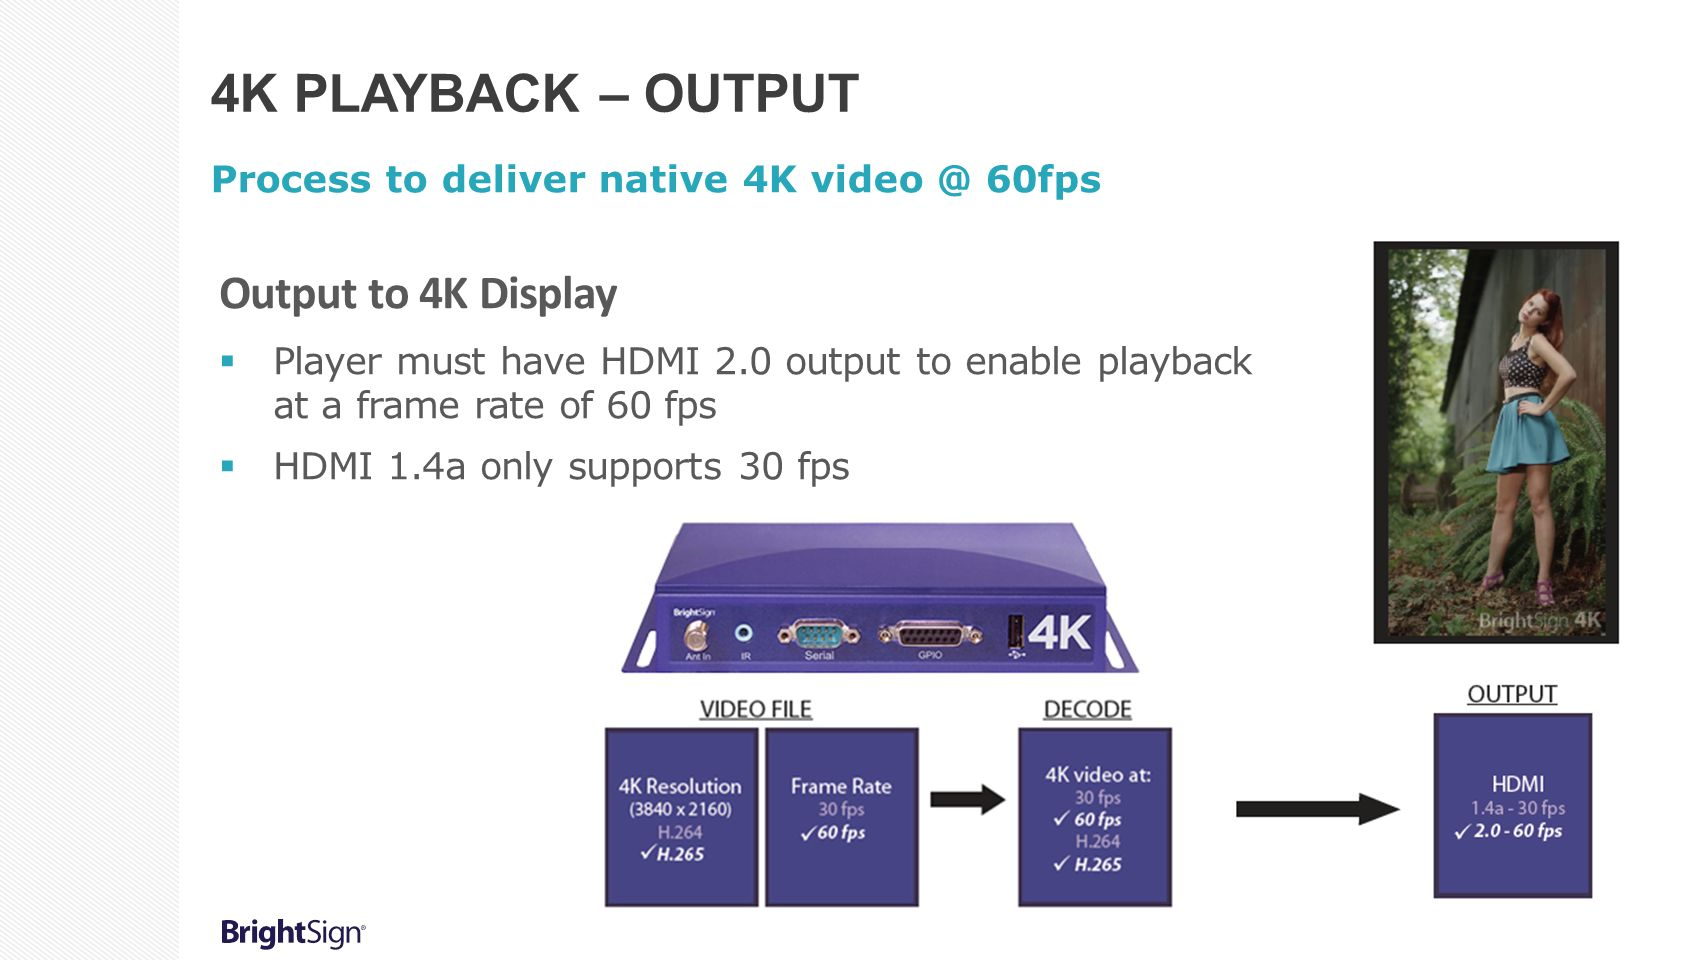 4K PLAYBACK – OUTPUT Process to deliver native 4K video @ 60fps Output to 4K Display  Player must have HDMI 2.0 output to enable playback at a frame rate of 60 fps  HDMI 1.4a only supports 30 fps